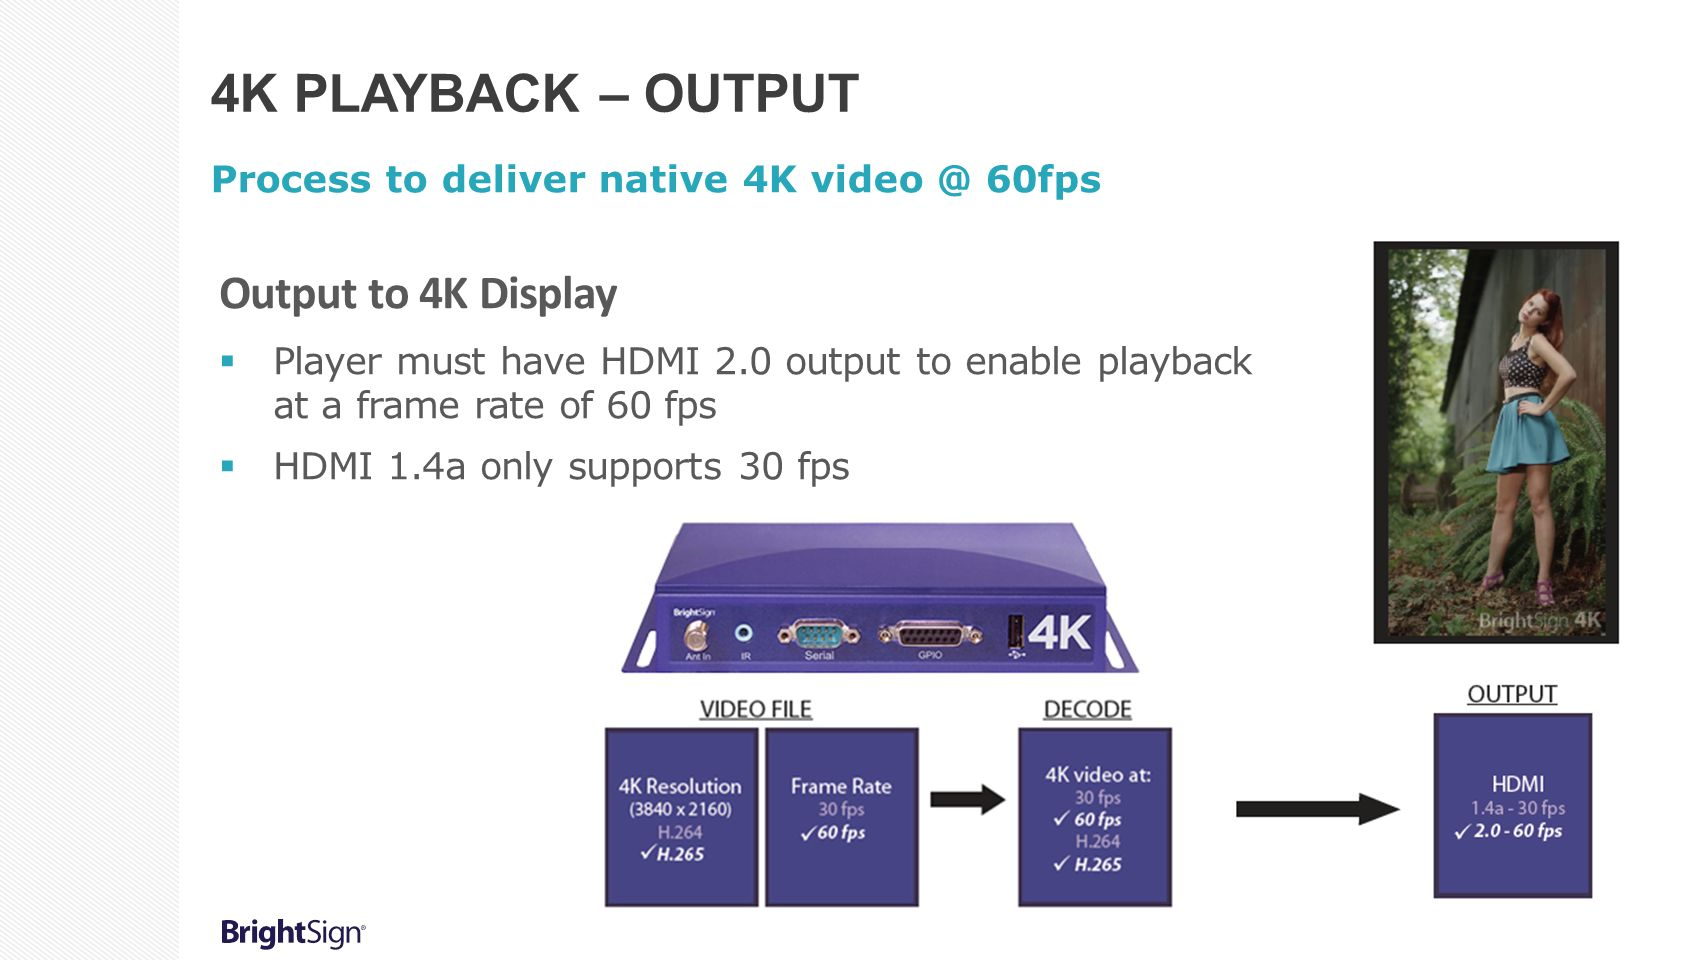 4K PLAYBACK – OUTPUT Process to deliver native 4K video @ 60fps Output to 4K Display  Player must have HDMI 2.0 output to enable playback at a frame rate of 60 fps  HDMI 1.4a only supports 30 fps